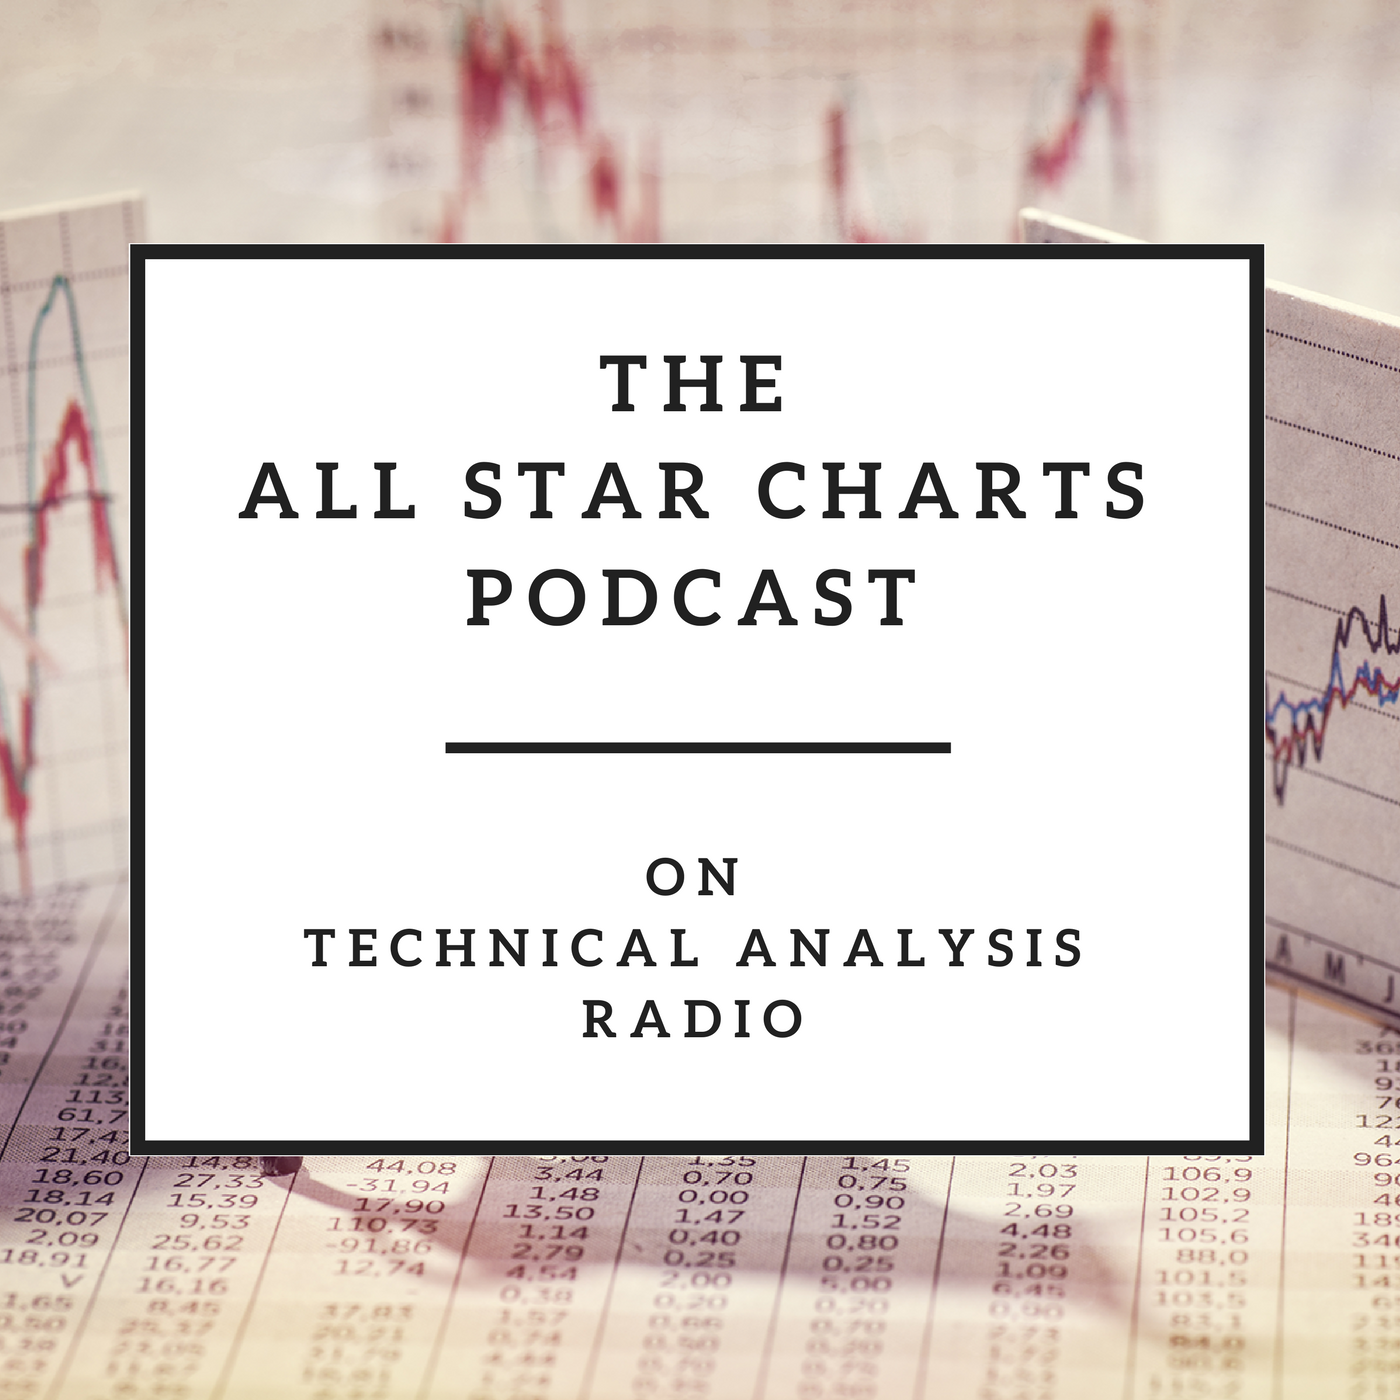 The Allstarcharts Podcast on Technical Analysis Radio: Current Market Analysis For Traders